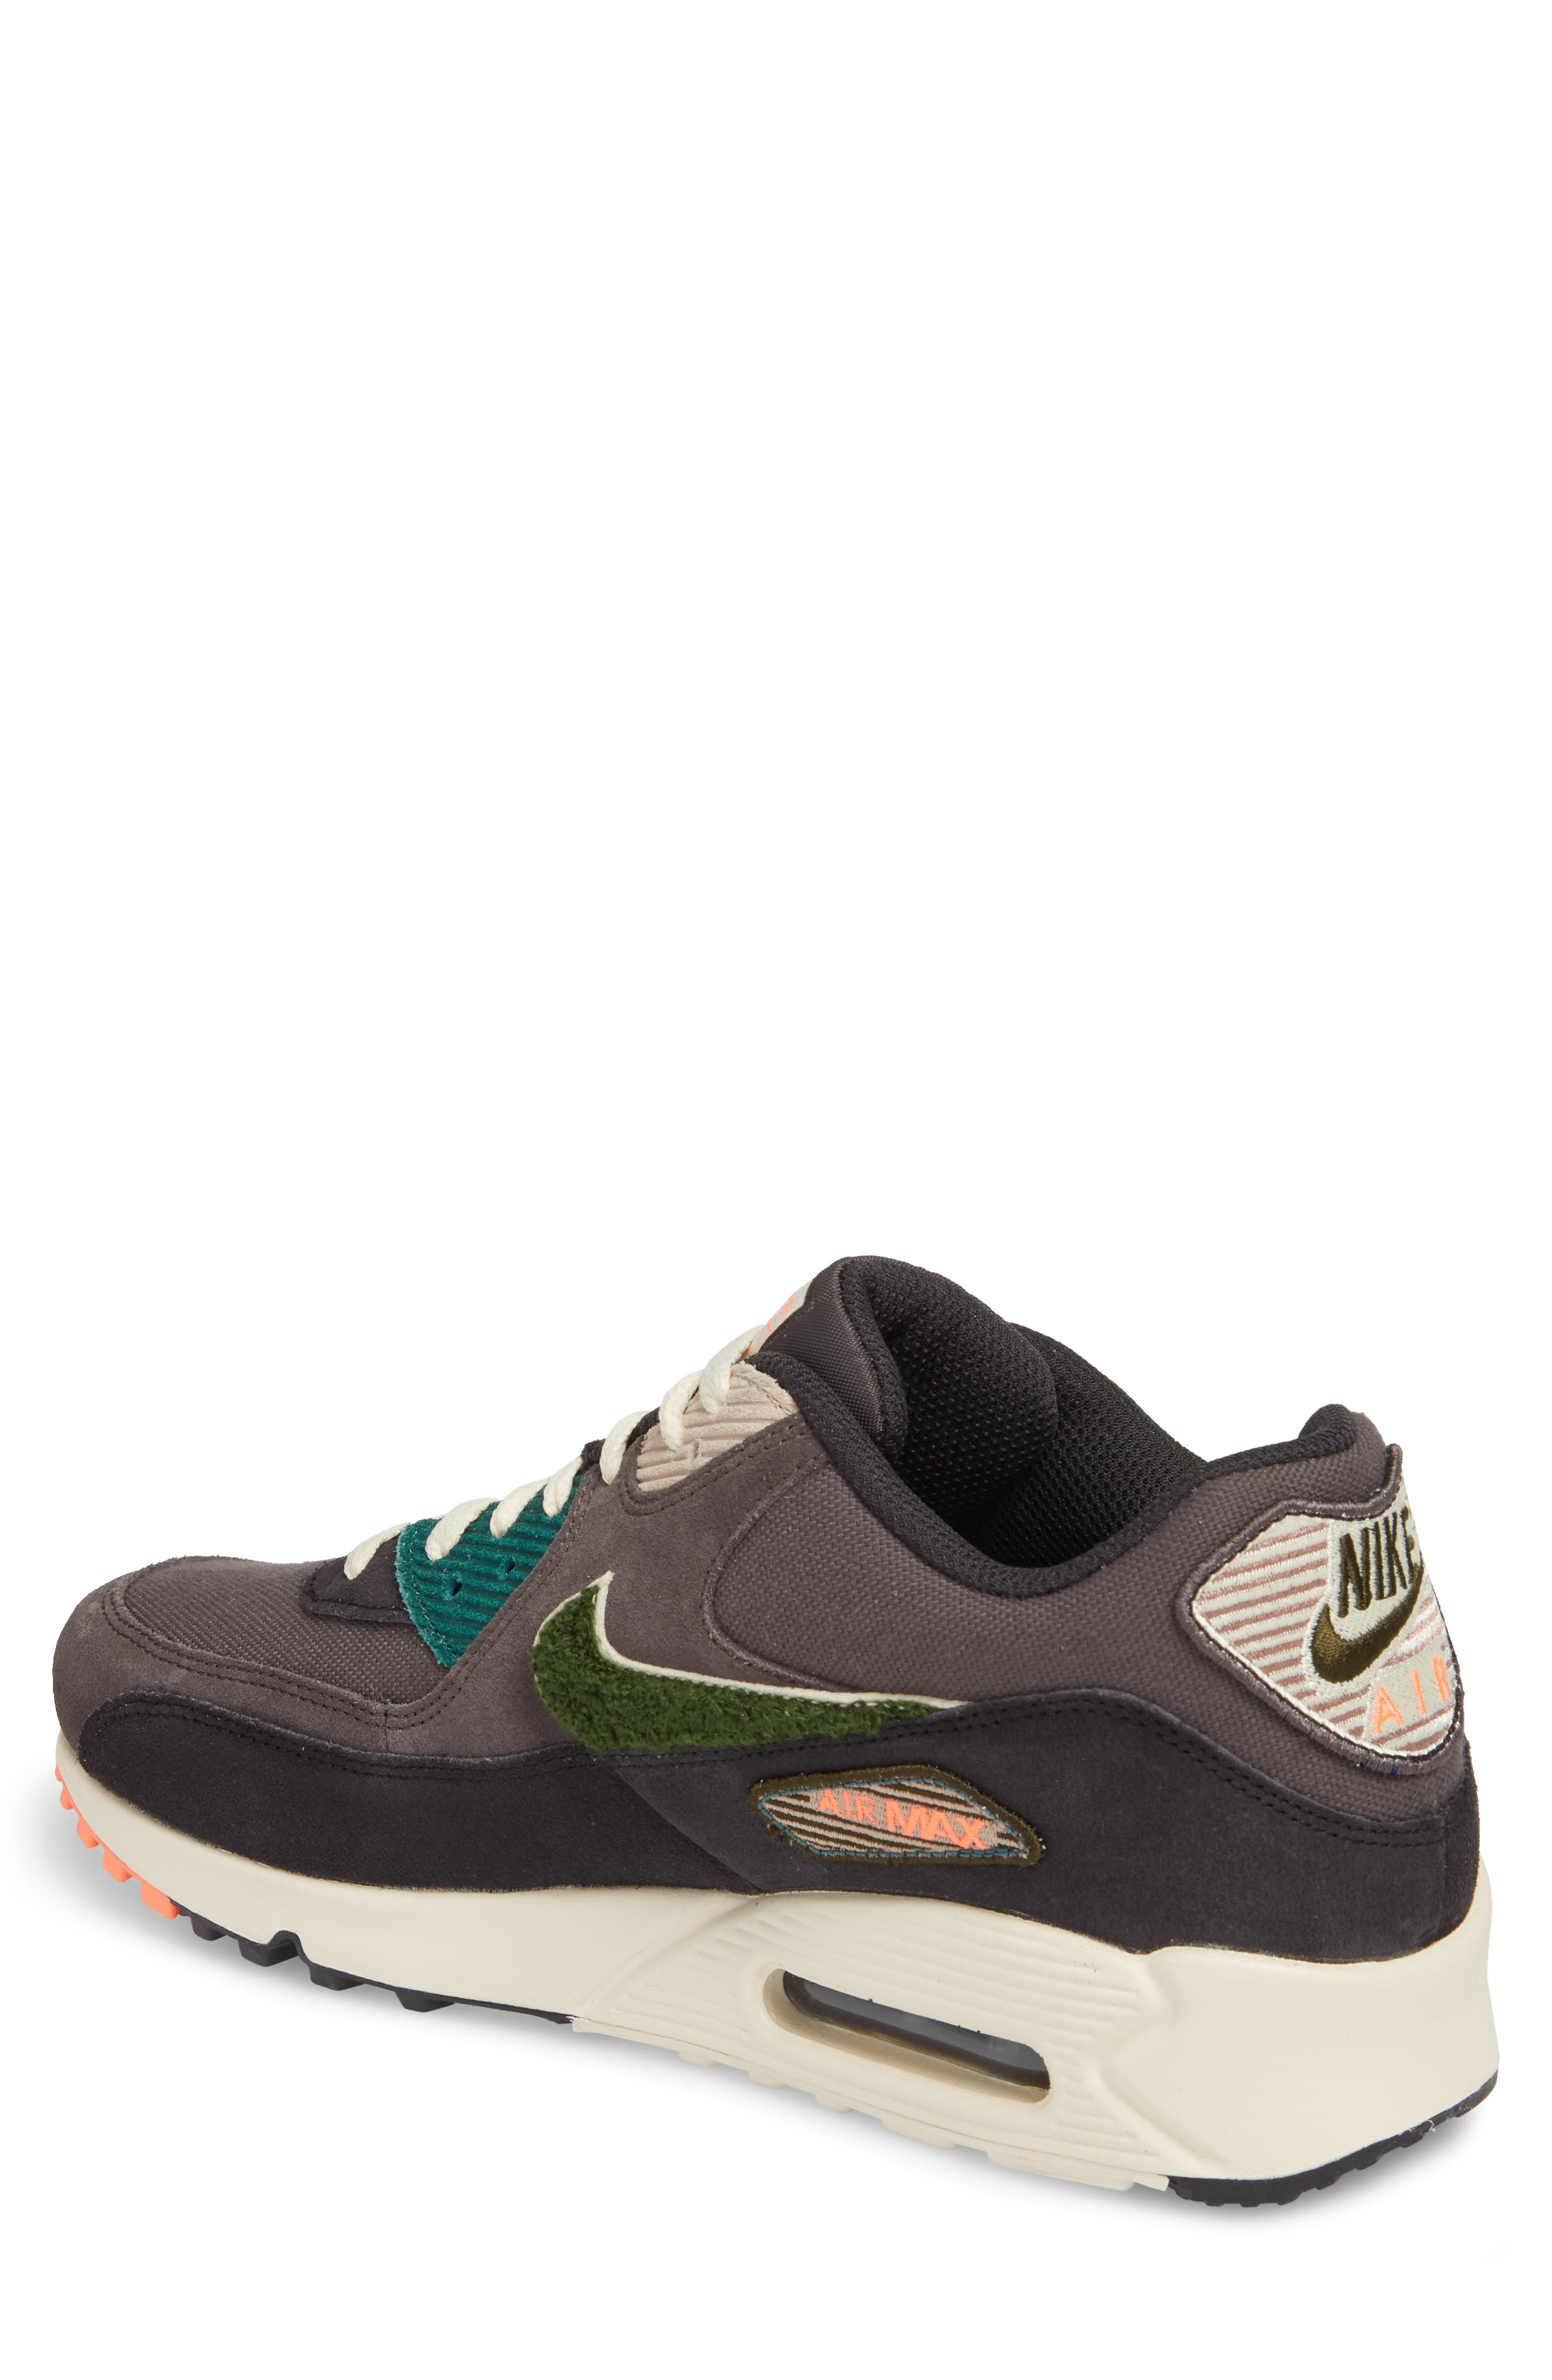 Air Max 90 Premium Sneaker,                             Alternate thumbnail 4, color,